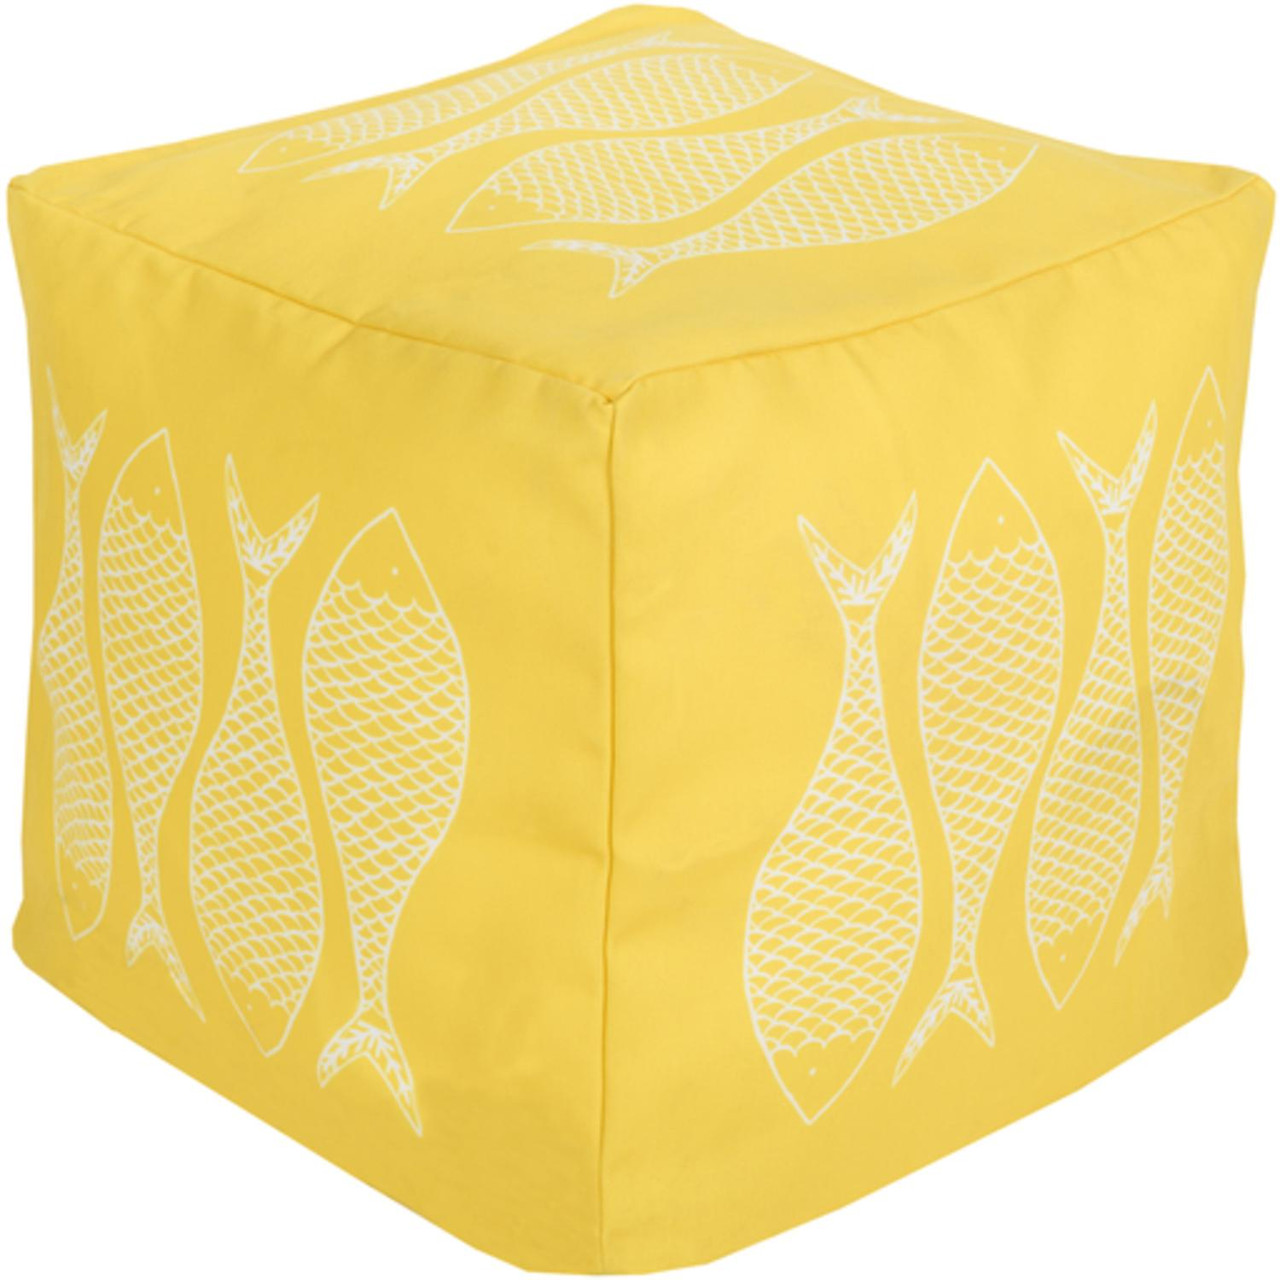 Stupendous 18 Squash Yellow And Light Gray Mackerel Square Outdoor Patio Pouf Ottoman 31087588 Machost Co Dining Chair Design Ideas Machostcouk